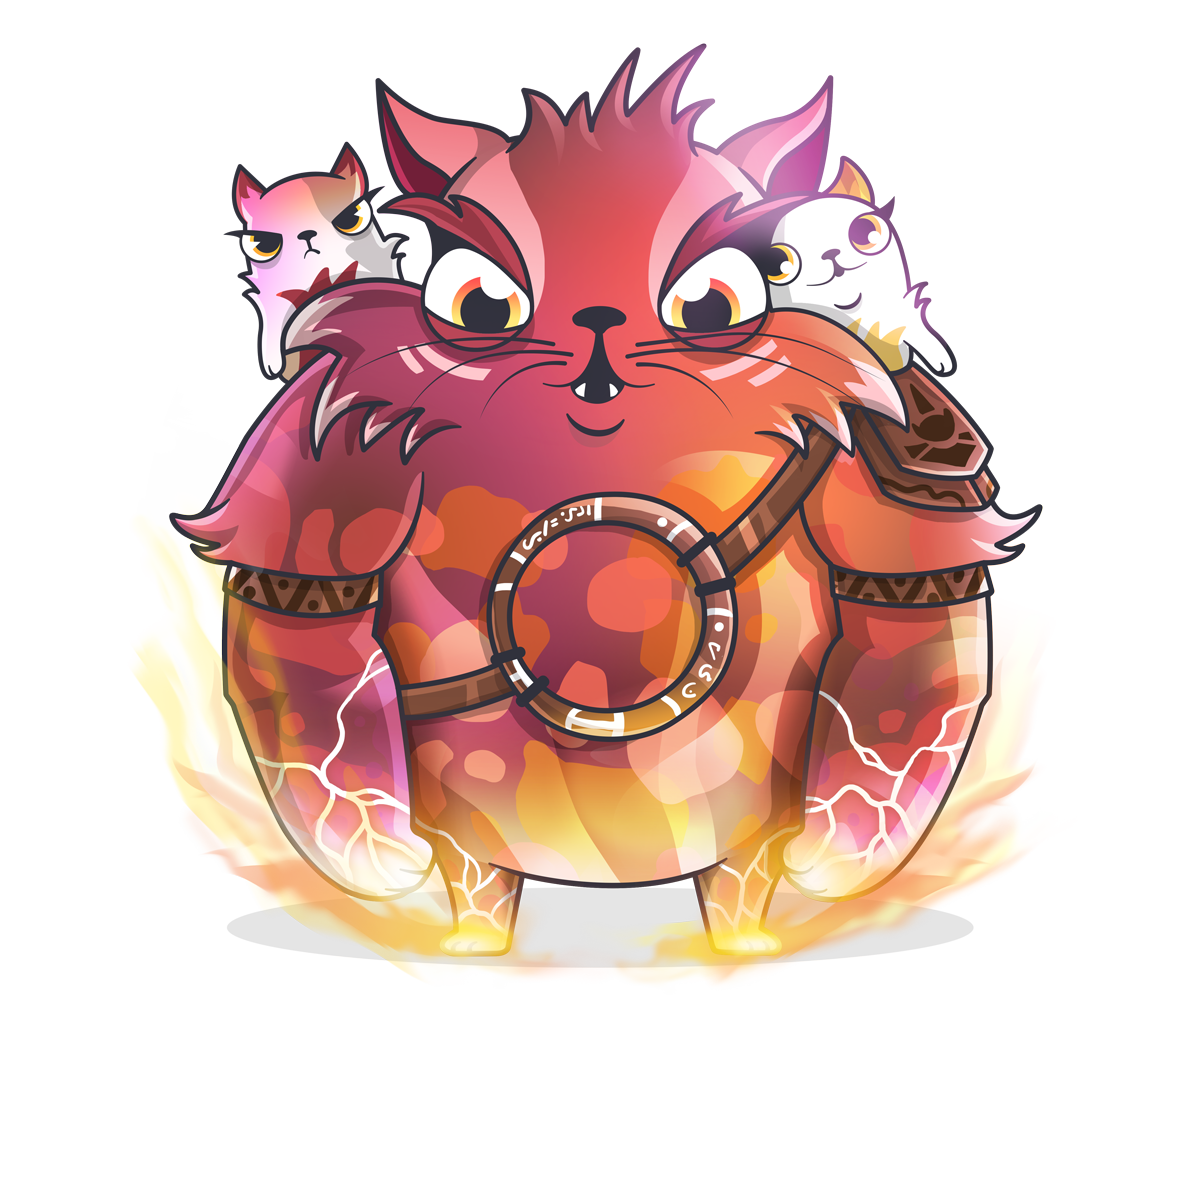 cryptokitty #1818933